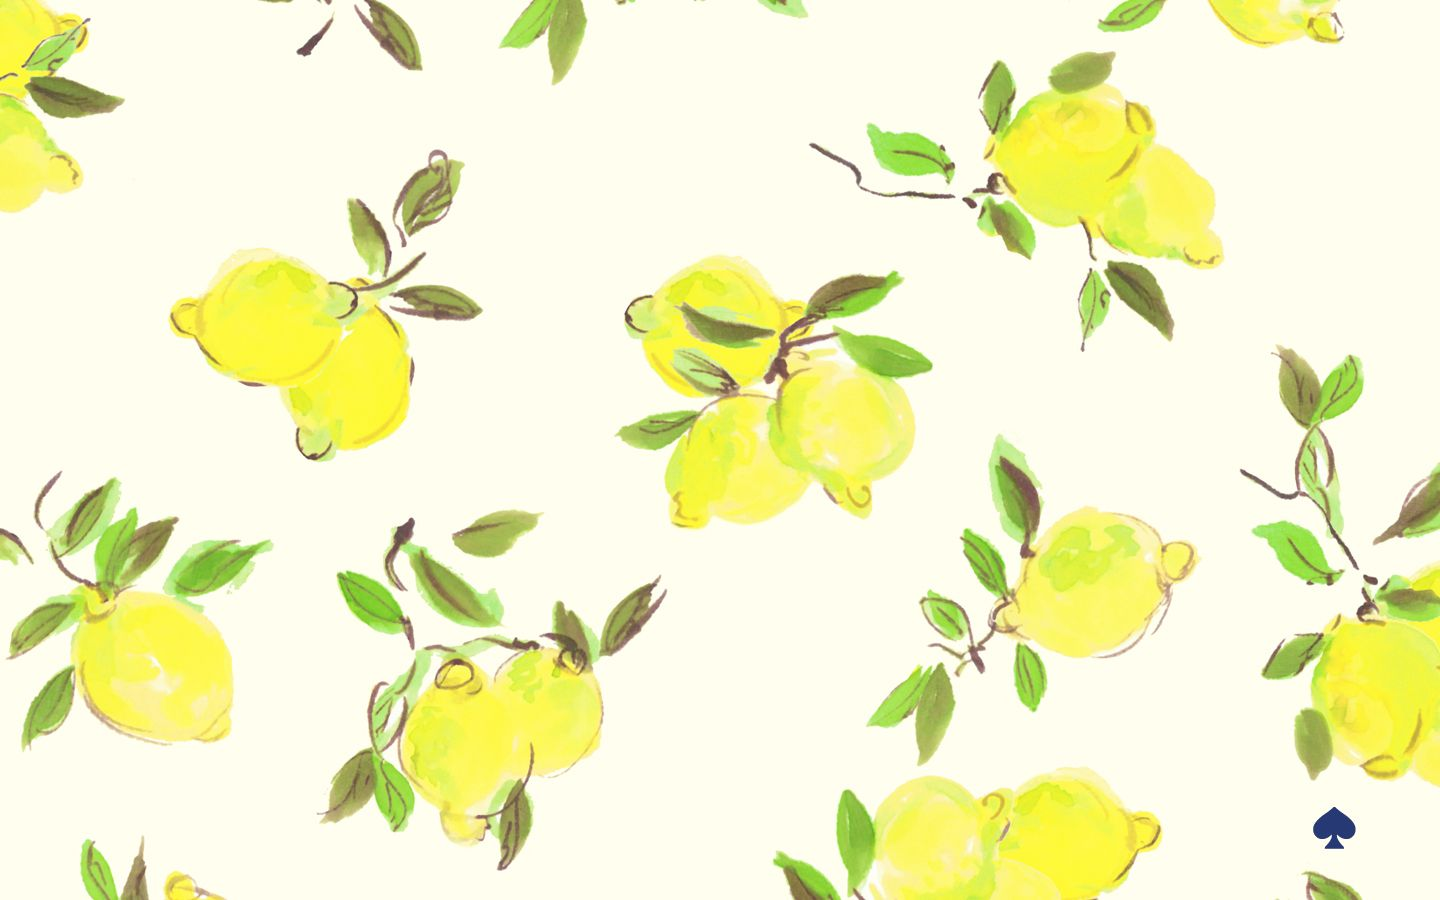 decoratecolorfully when life gives you lemons, make them